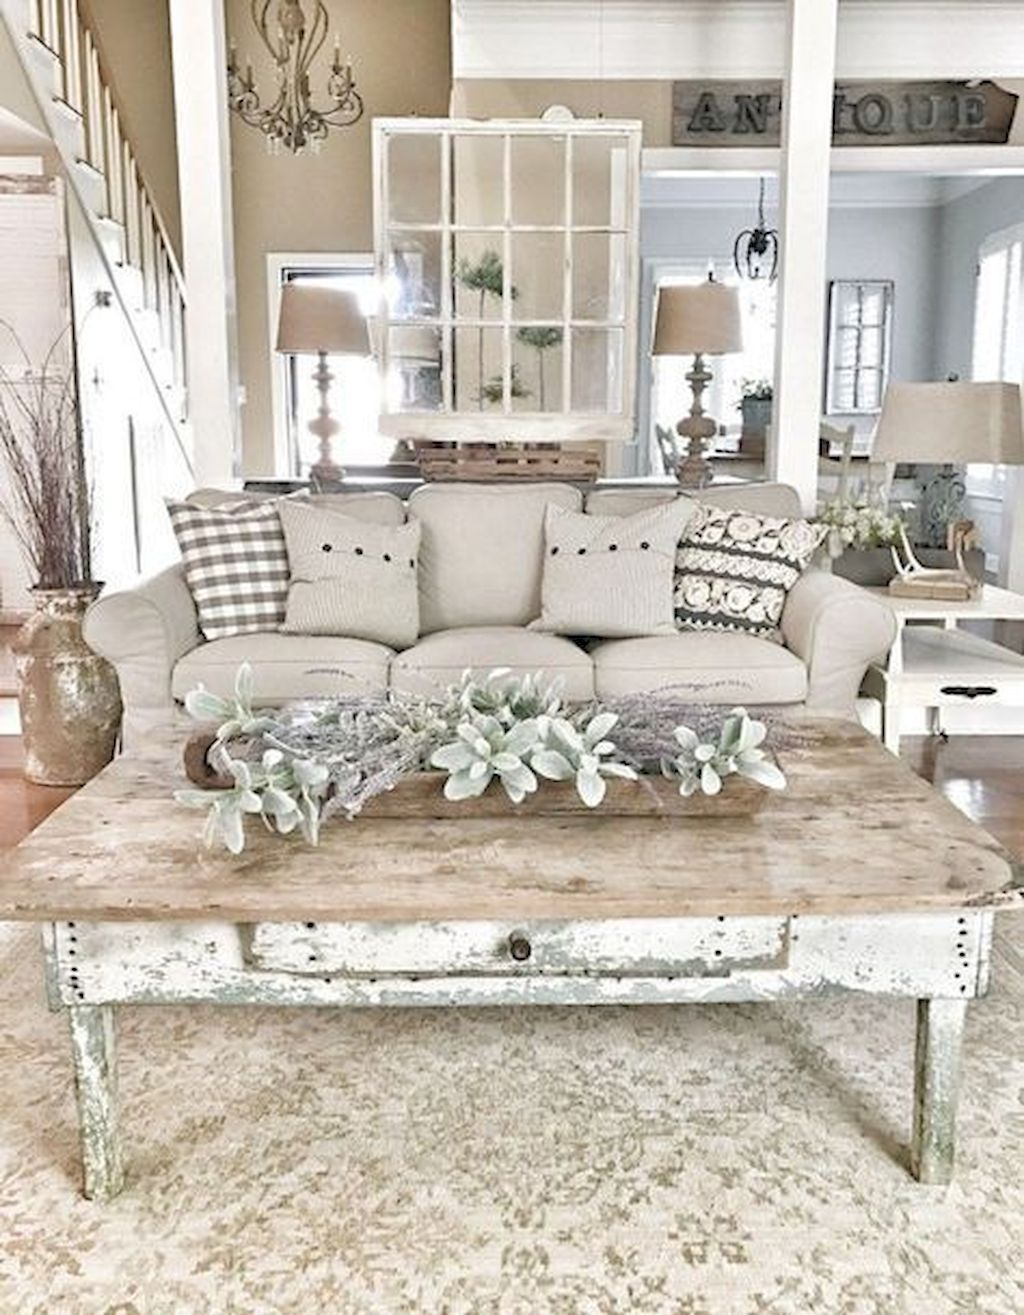 Terrific Incredible French Country Living Room Decor Ideas 41 New Complete Home Design Collection Barbaintelli Responsecom